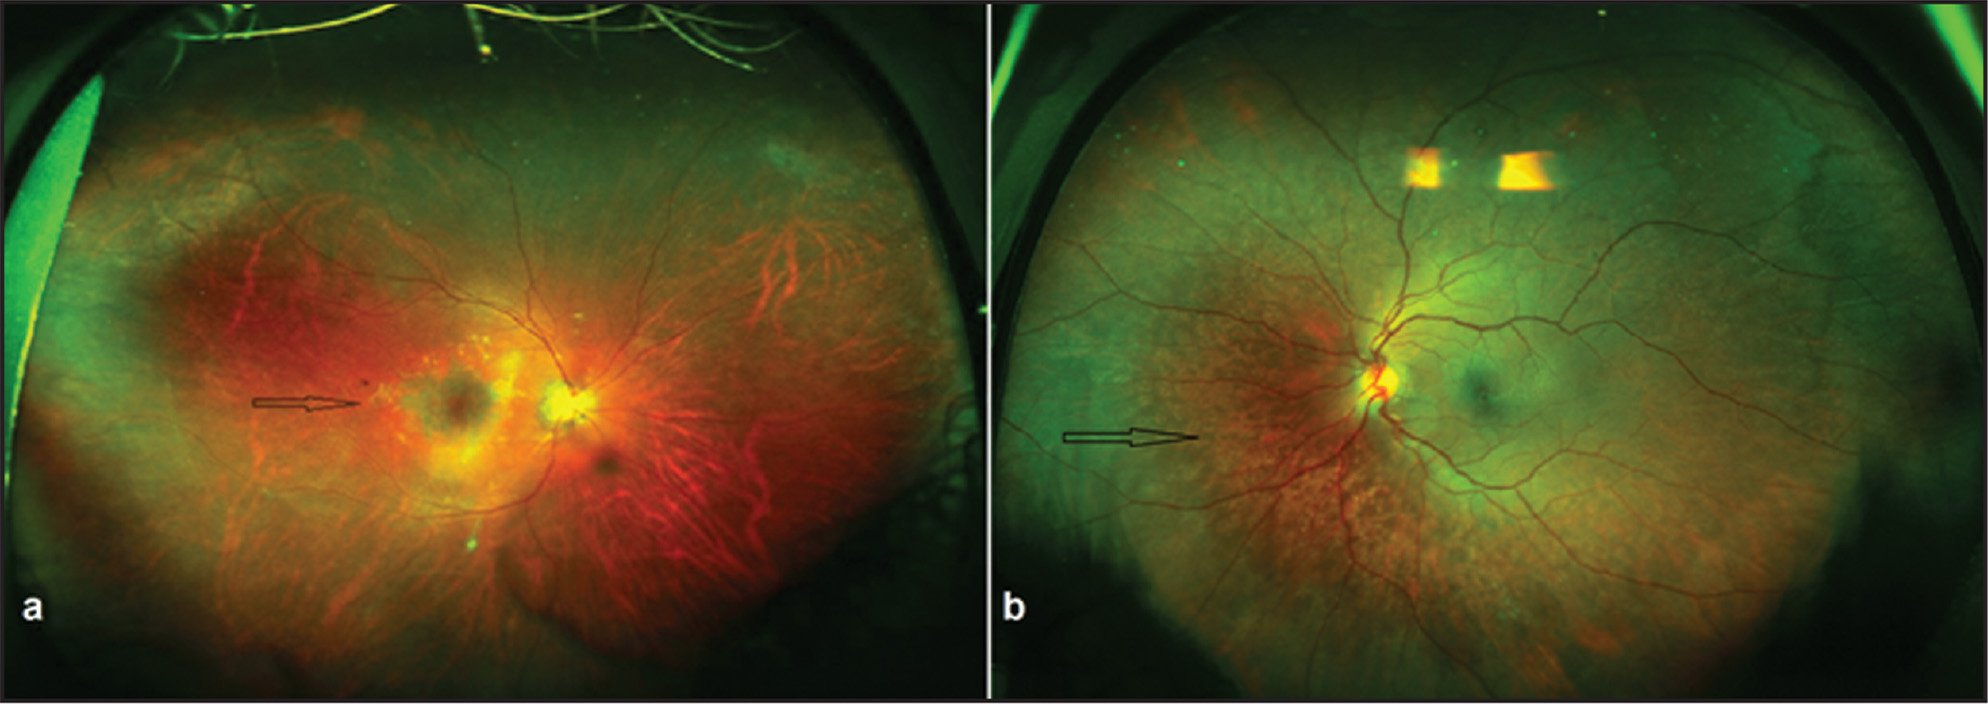 UWF retinal color imaging (Optos 200Tx) of patient 32 (right eye), a 61-year-old woman. The Optos image was taken 41 days after an uneventful cataract extraction surgery. Note the macular dystrophy (black arrow). A similar symmetric pathology was found in the fellow eye. The patient was referred for further evaluation by a retina specialist.